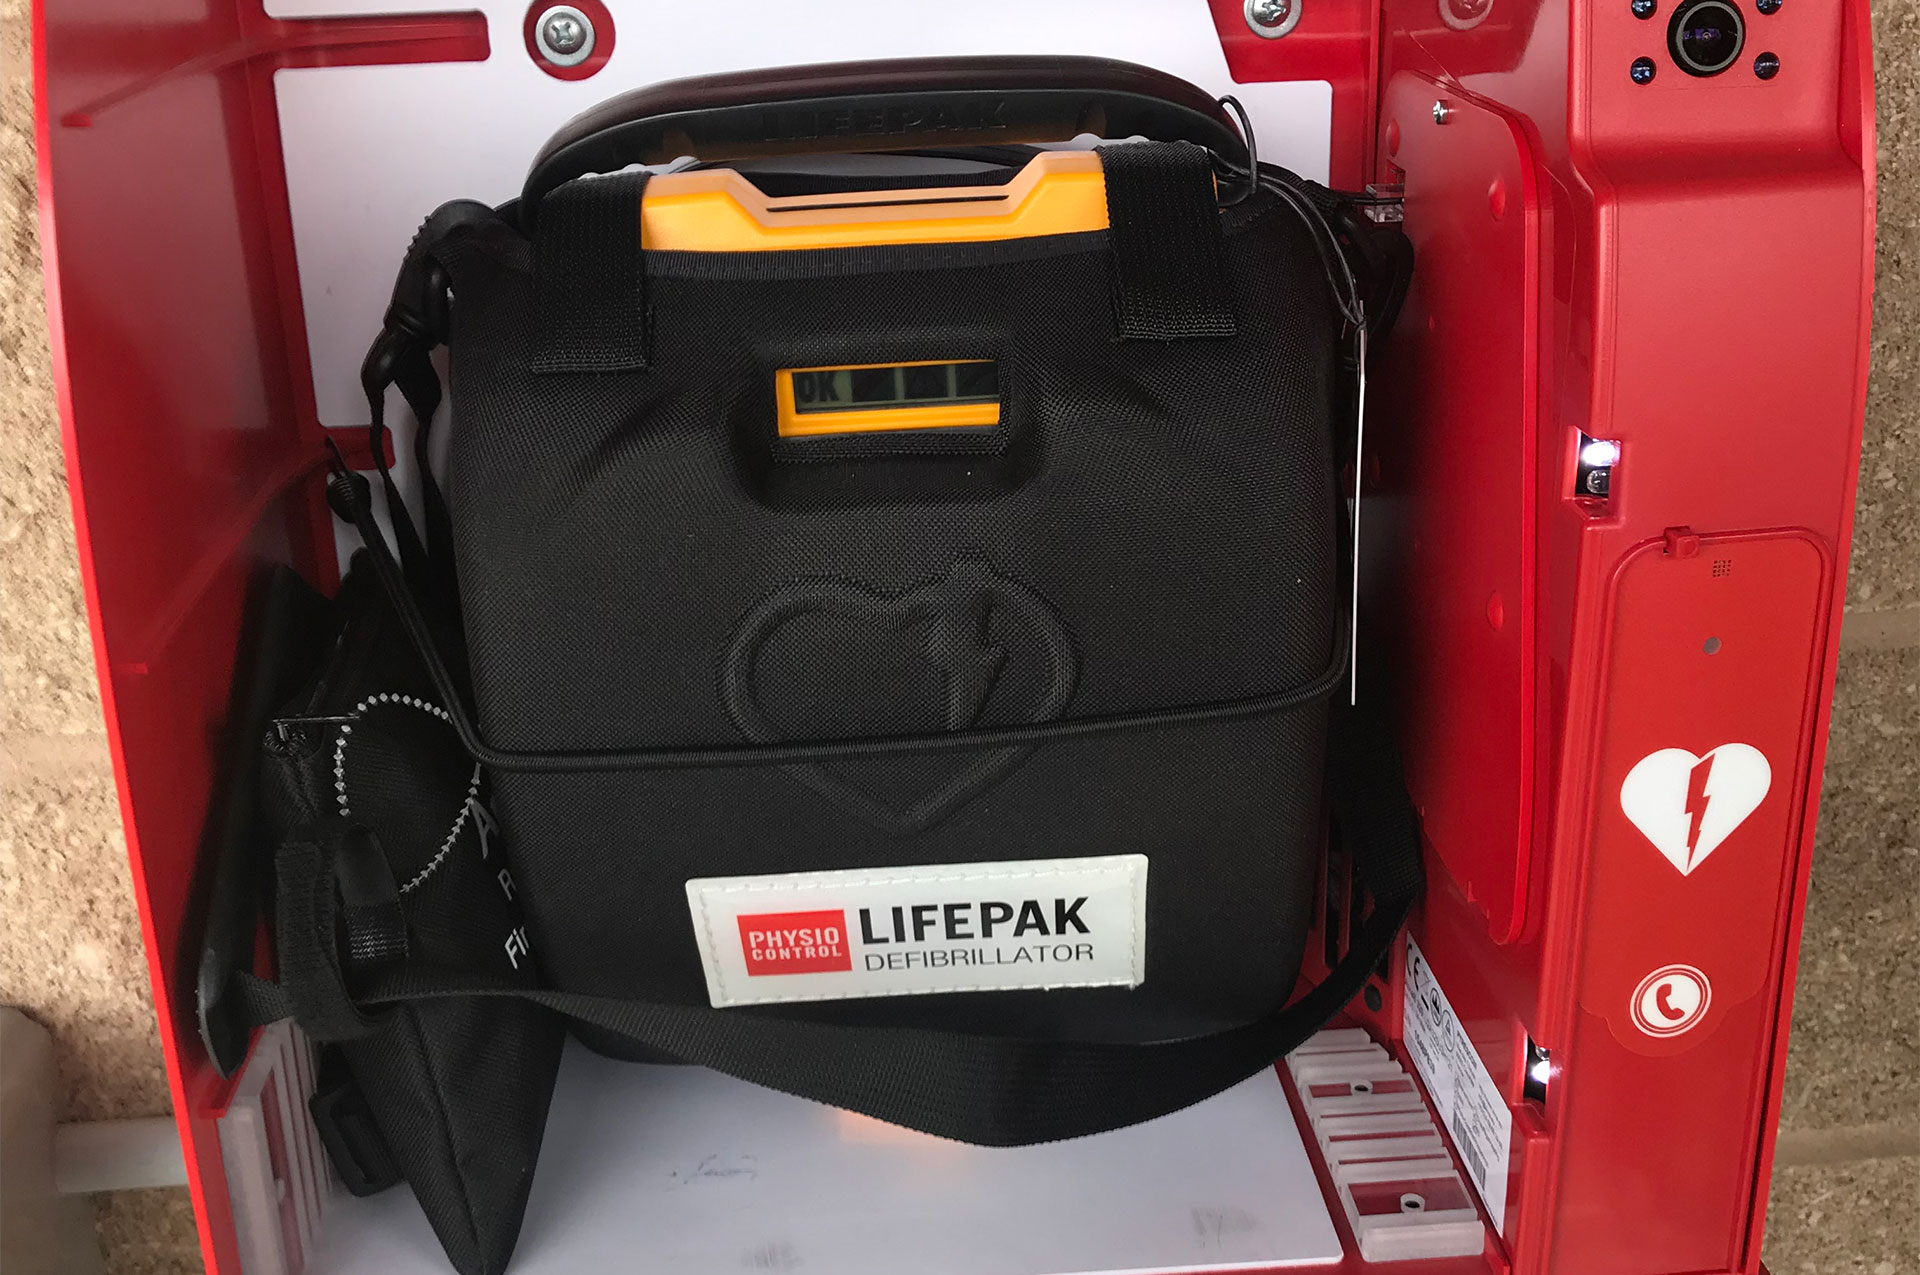 AED in Parks